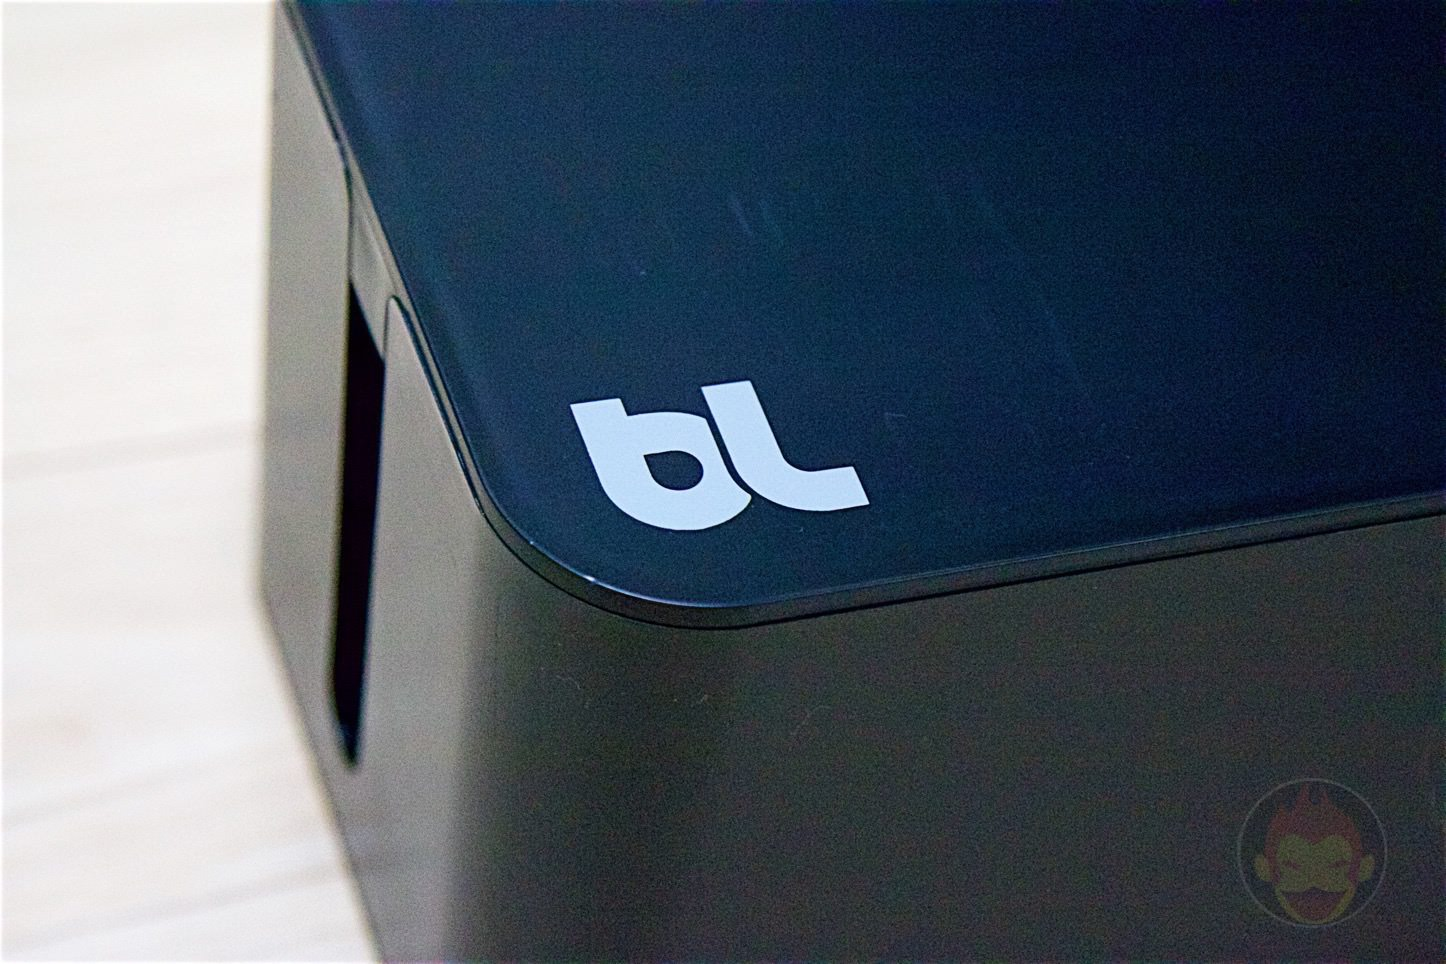 Bluelounge The CableBox